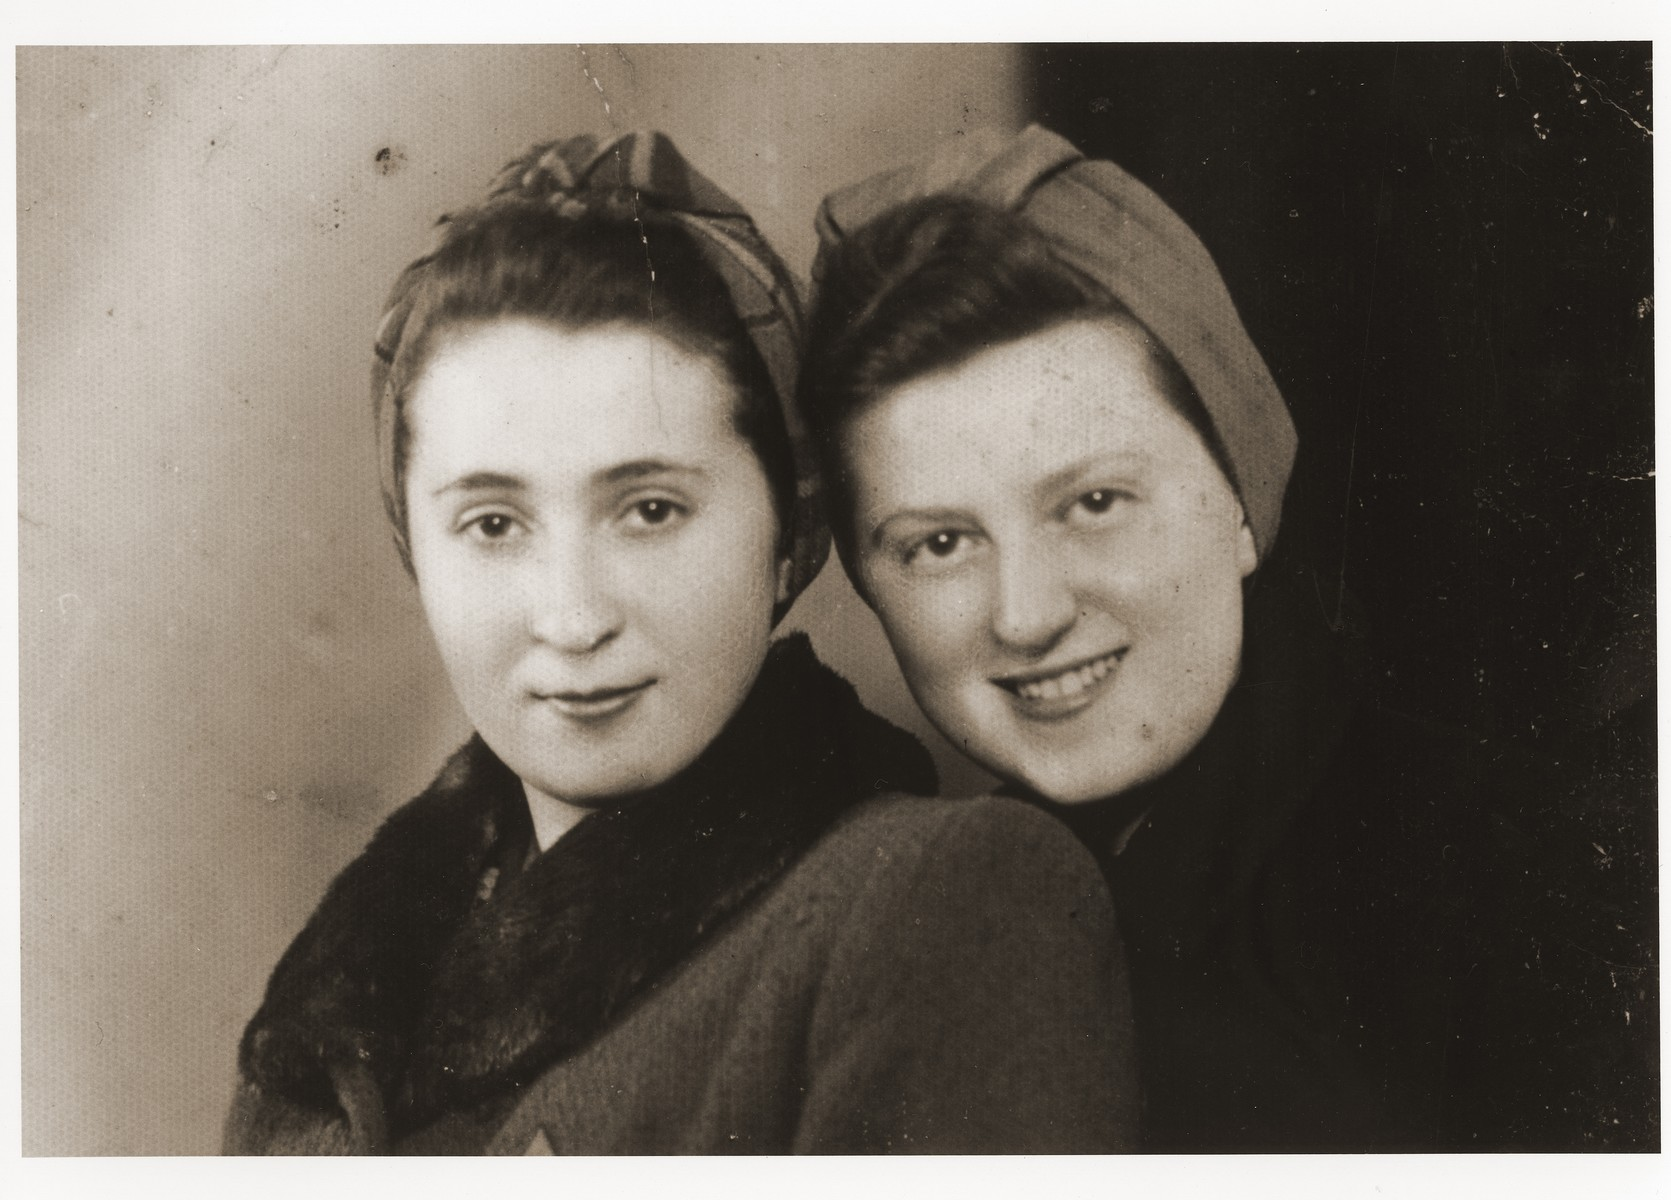 Portrait of two young women in the Dabrowa ghetto.  Pictured on the right is Renia (Zylberszac) Nadel.